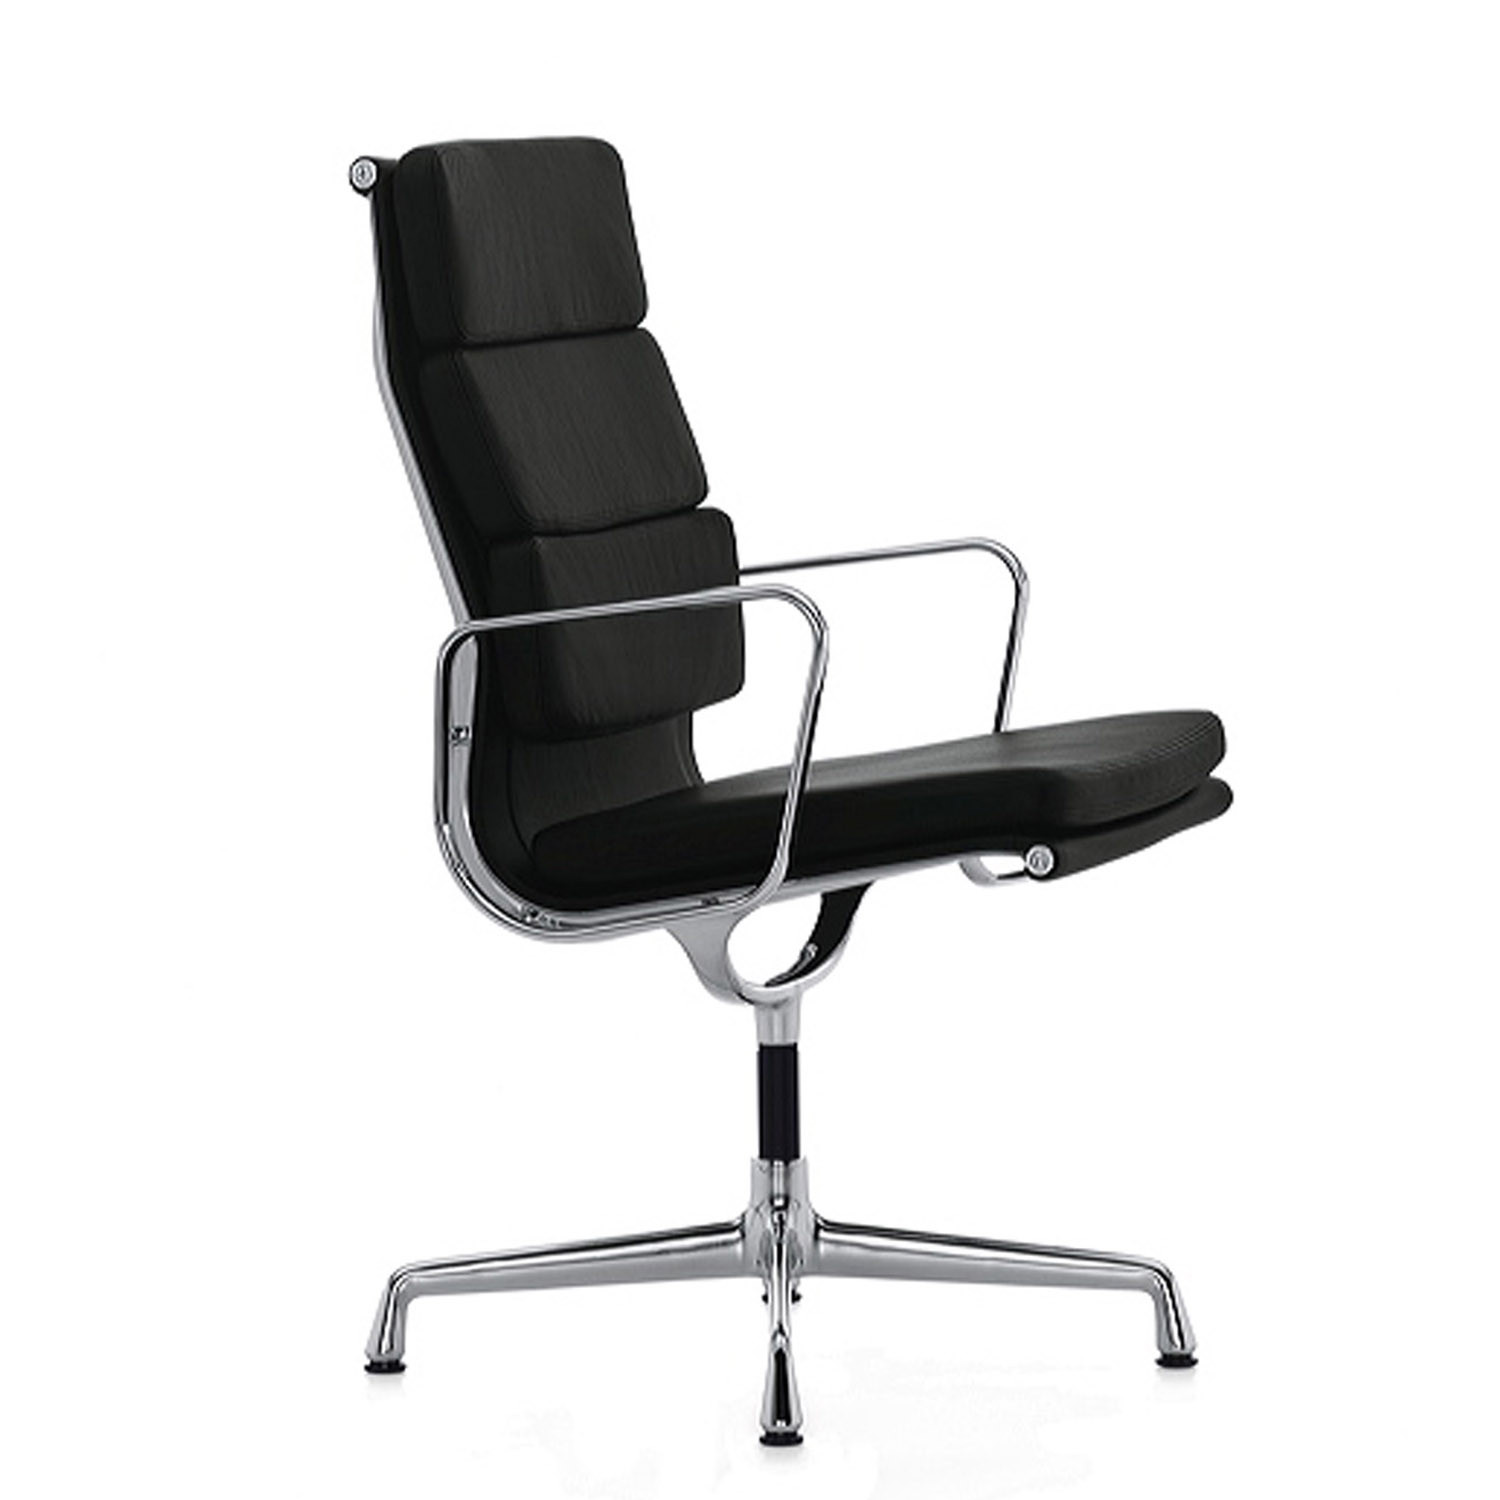 EA219 Soft Pad Chair